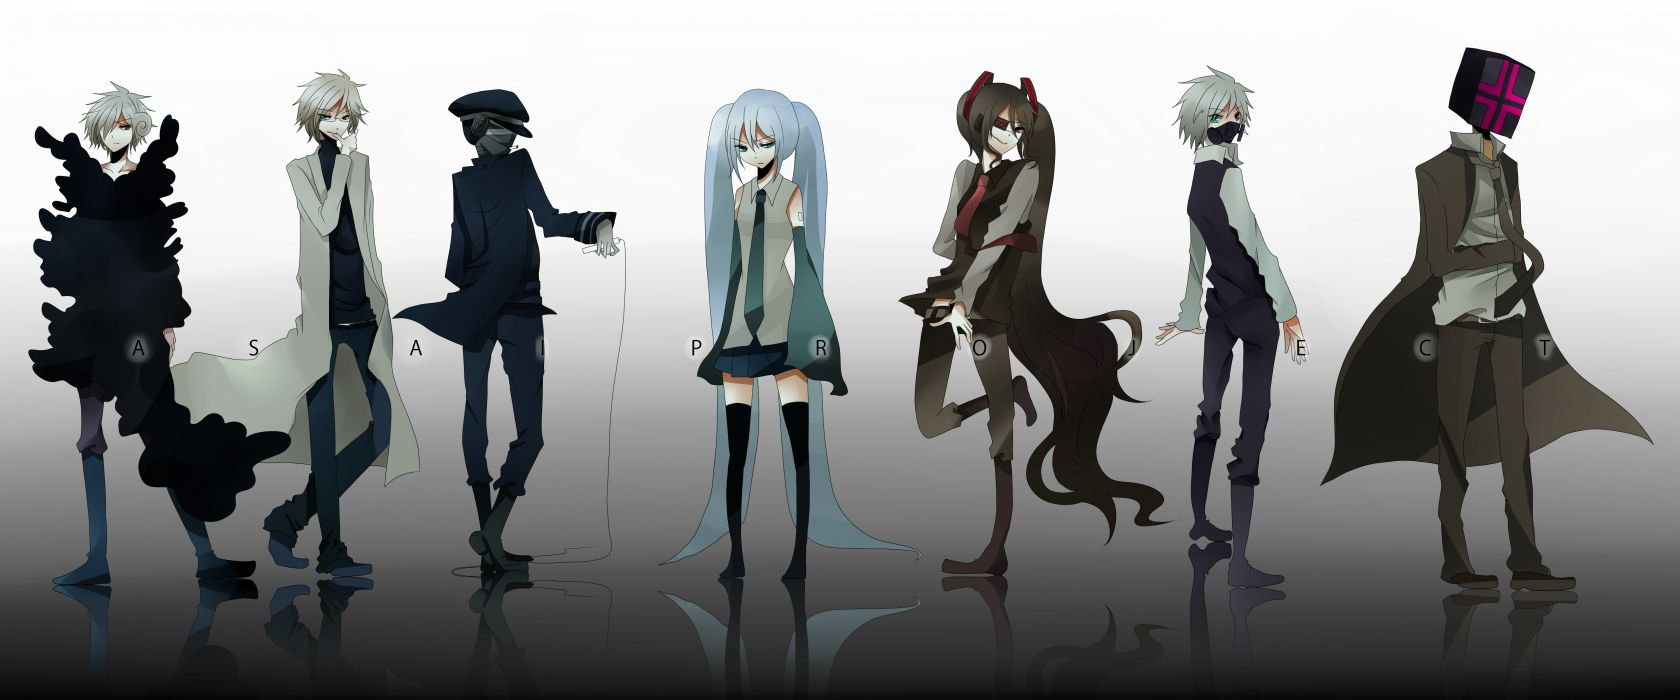 Blondes pants vocaloid hatsune miku suit tie skirts long hair eyepatch blue hair gas masks heterochromia short hair thigh highs twintails zatsune miku aqua eyes orange eyes reflections hats simple backgr wallpaper